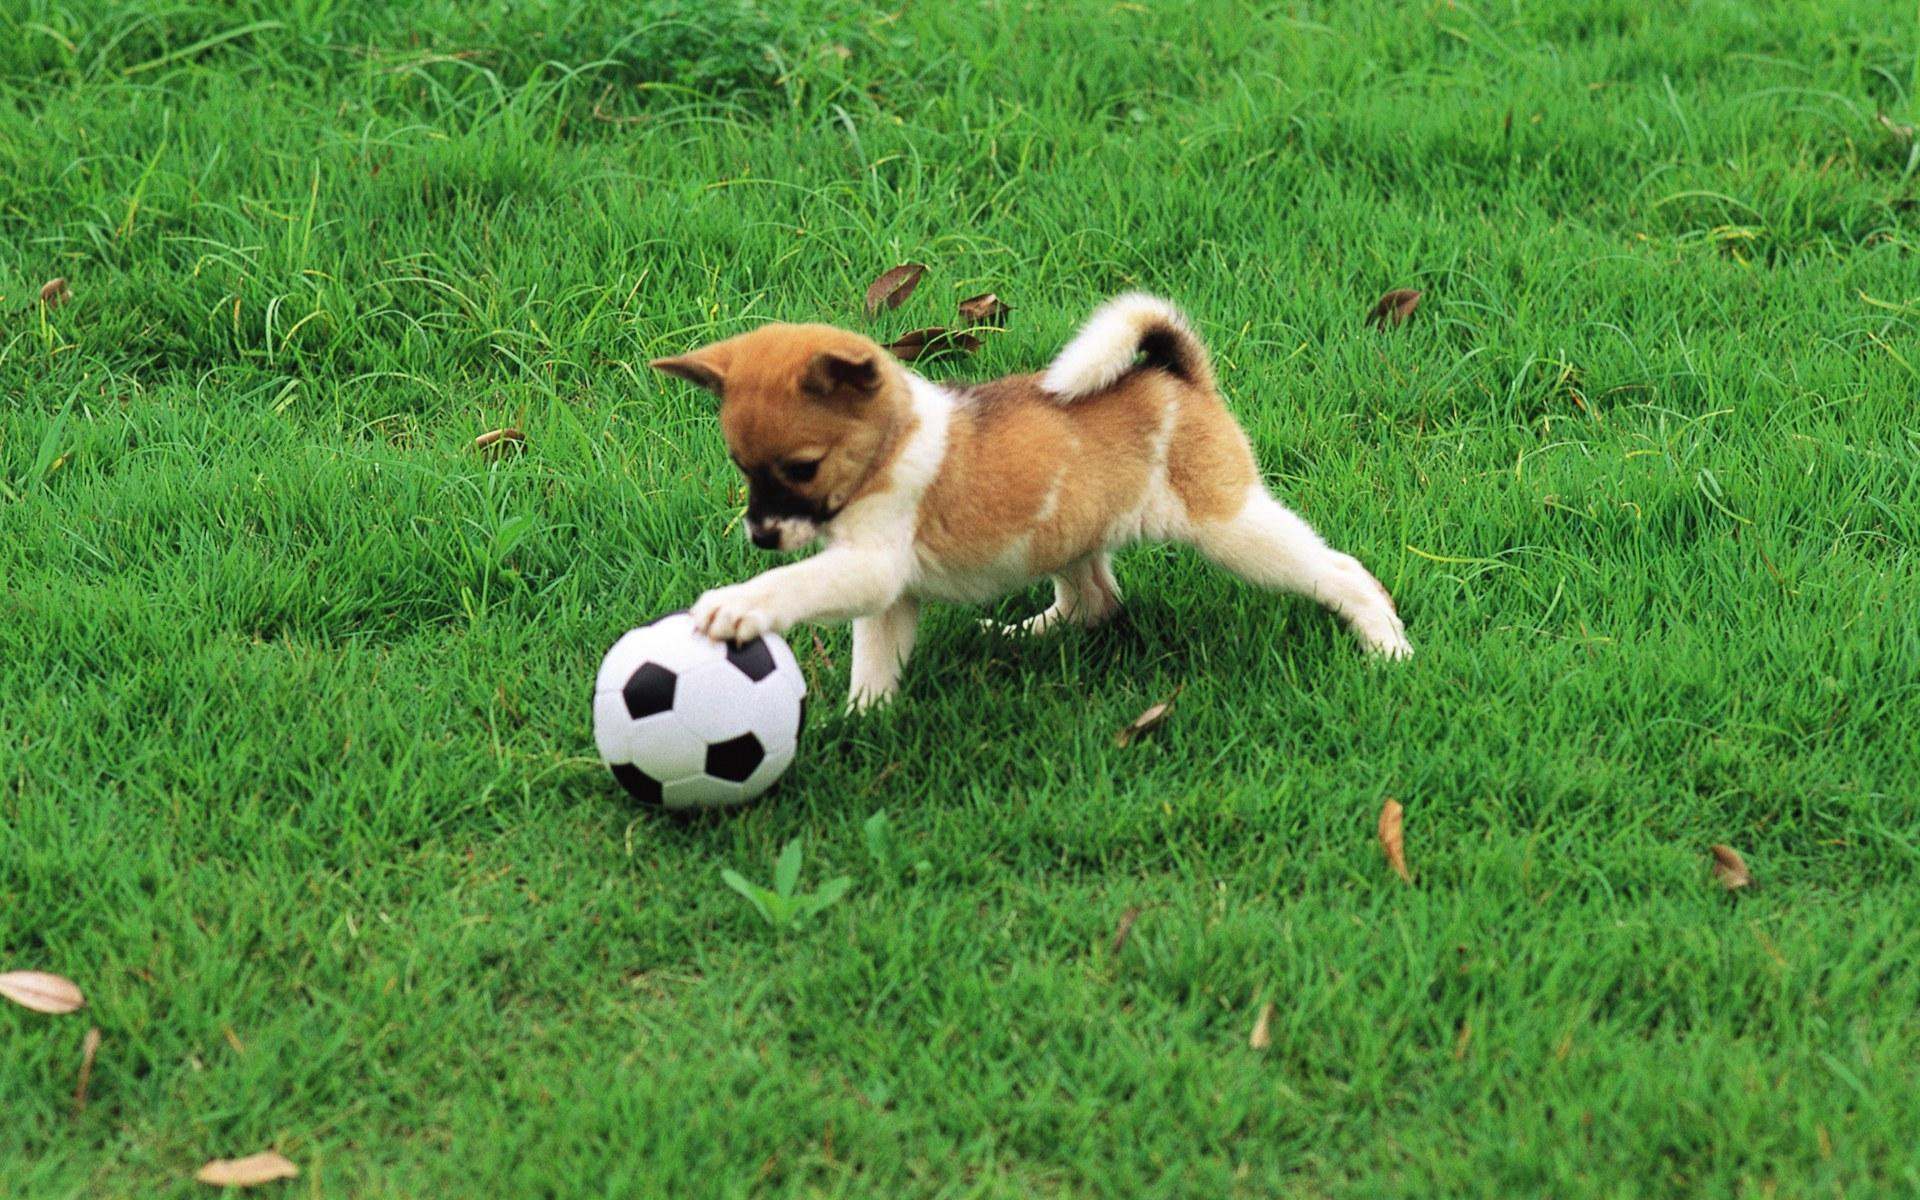 pretty-dog-playing-with-football